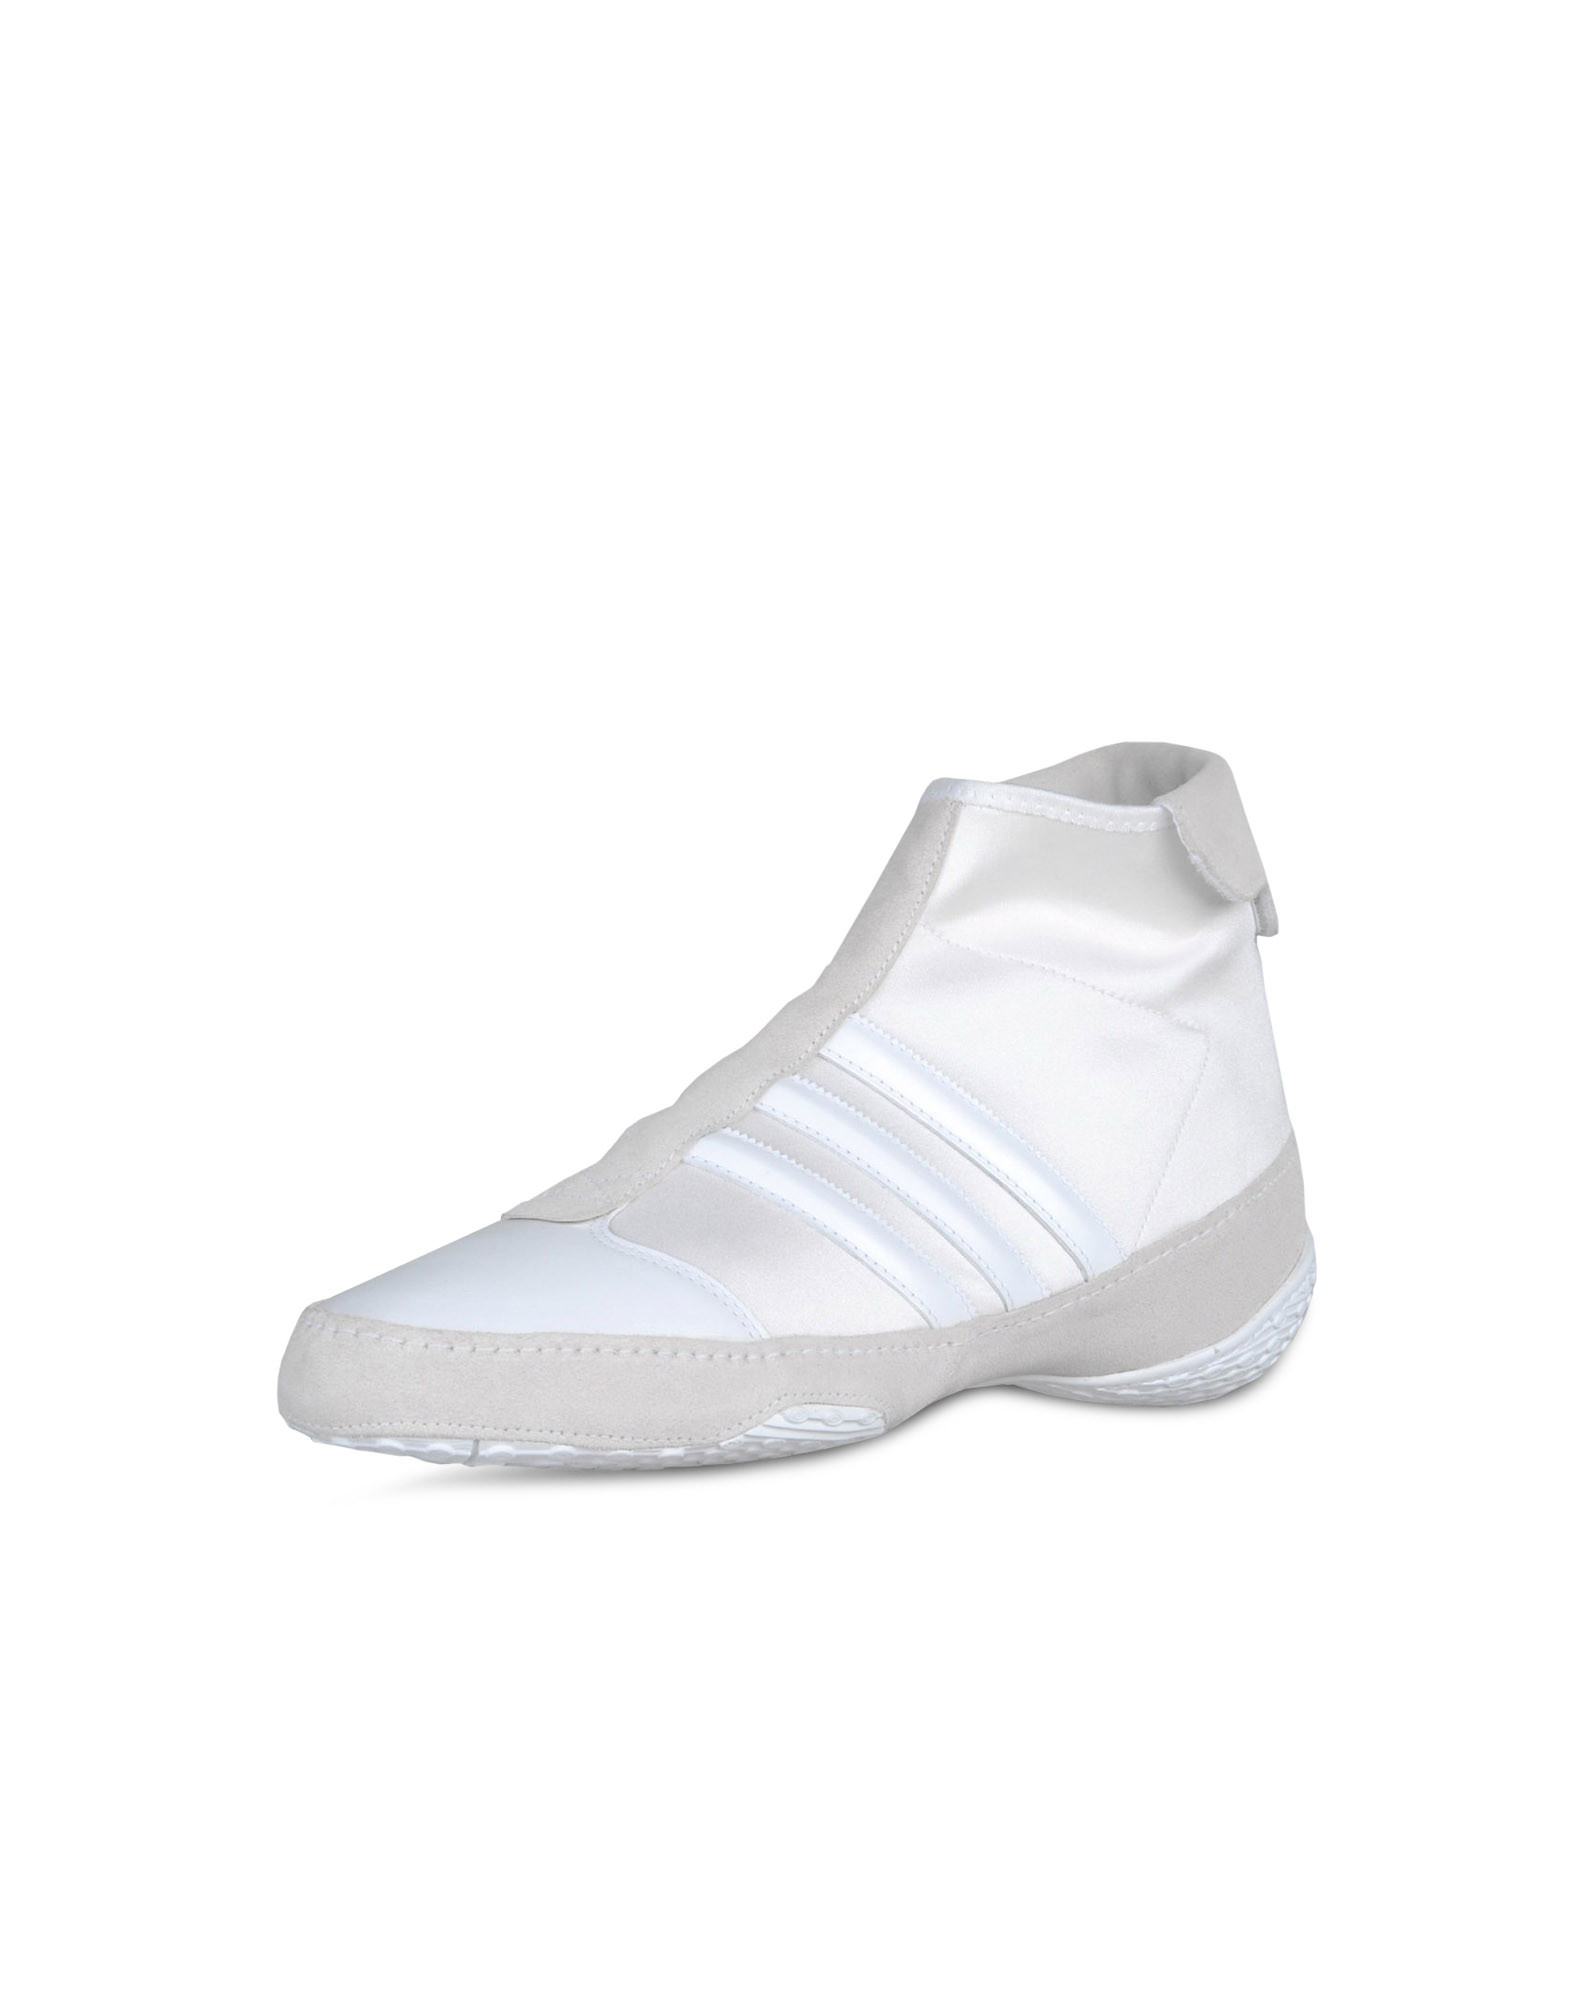 adidas wrestling shoes. yy campus wrestling shoes man y-3 adidas c